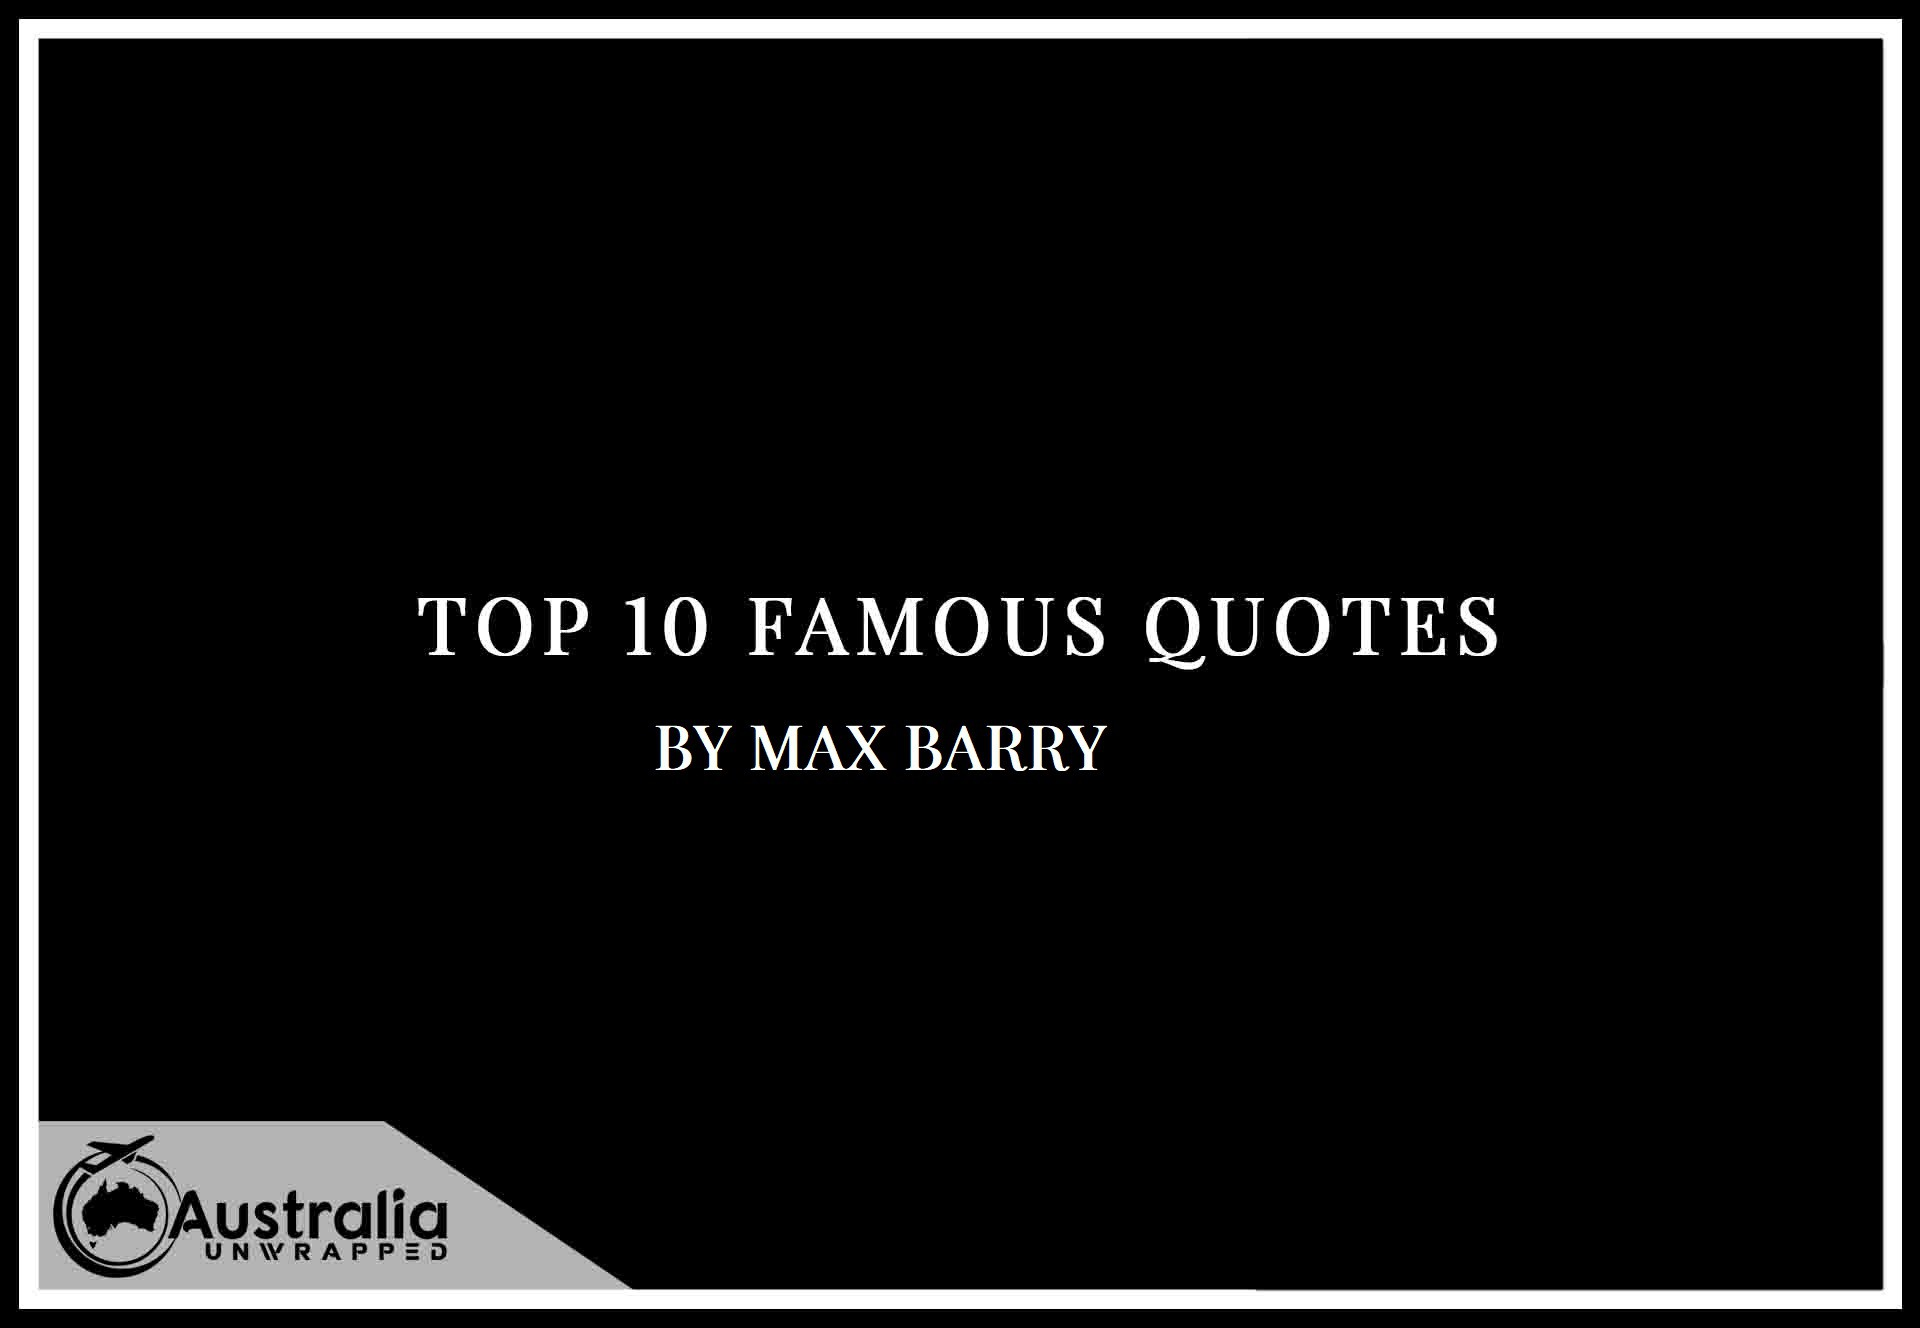 Top 10 Famous Quotes by Author Max Barry